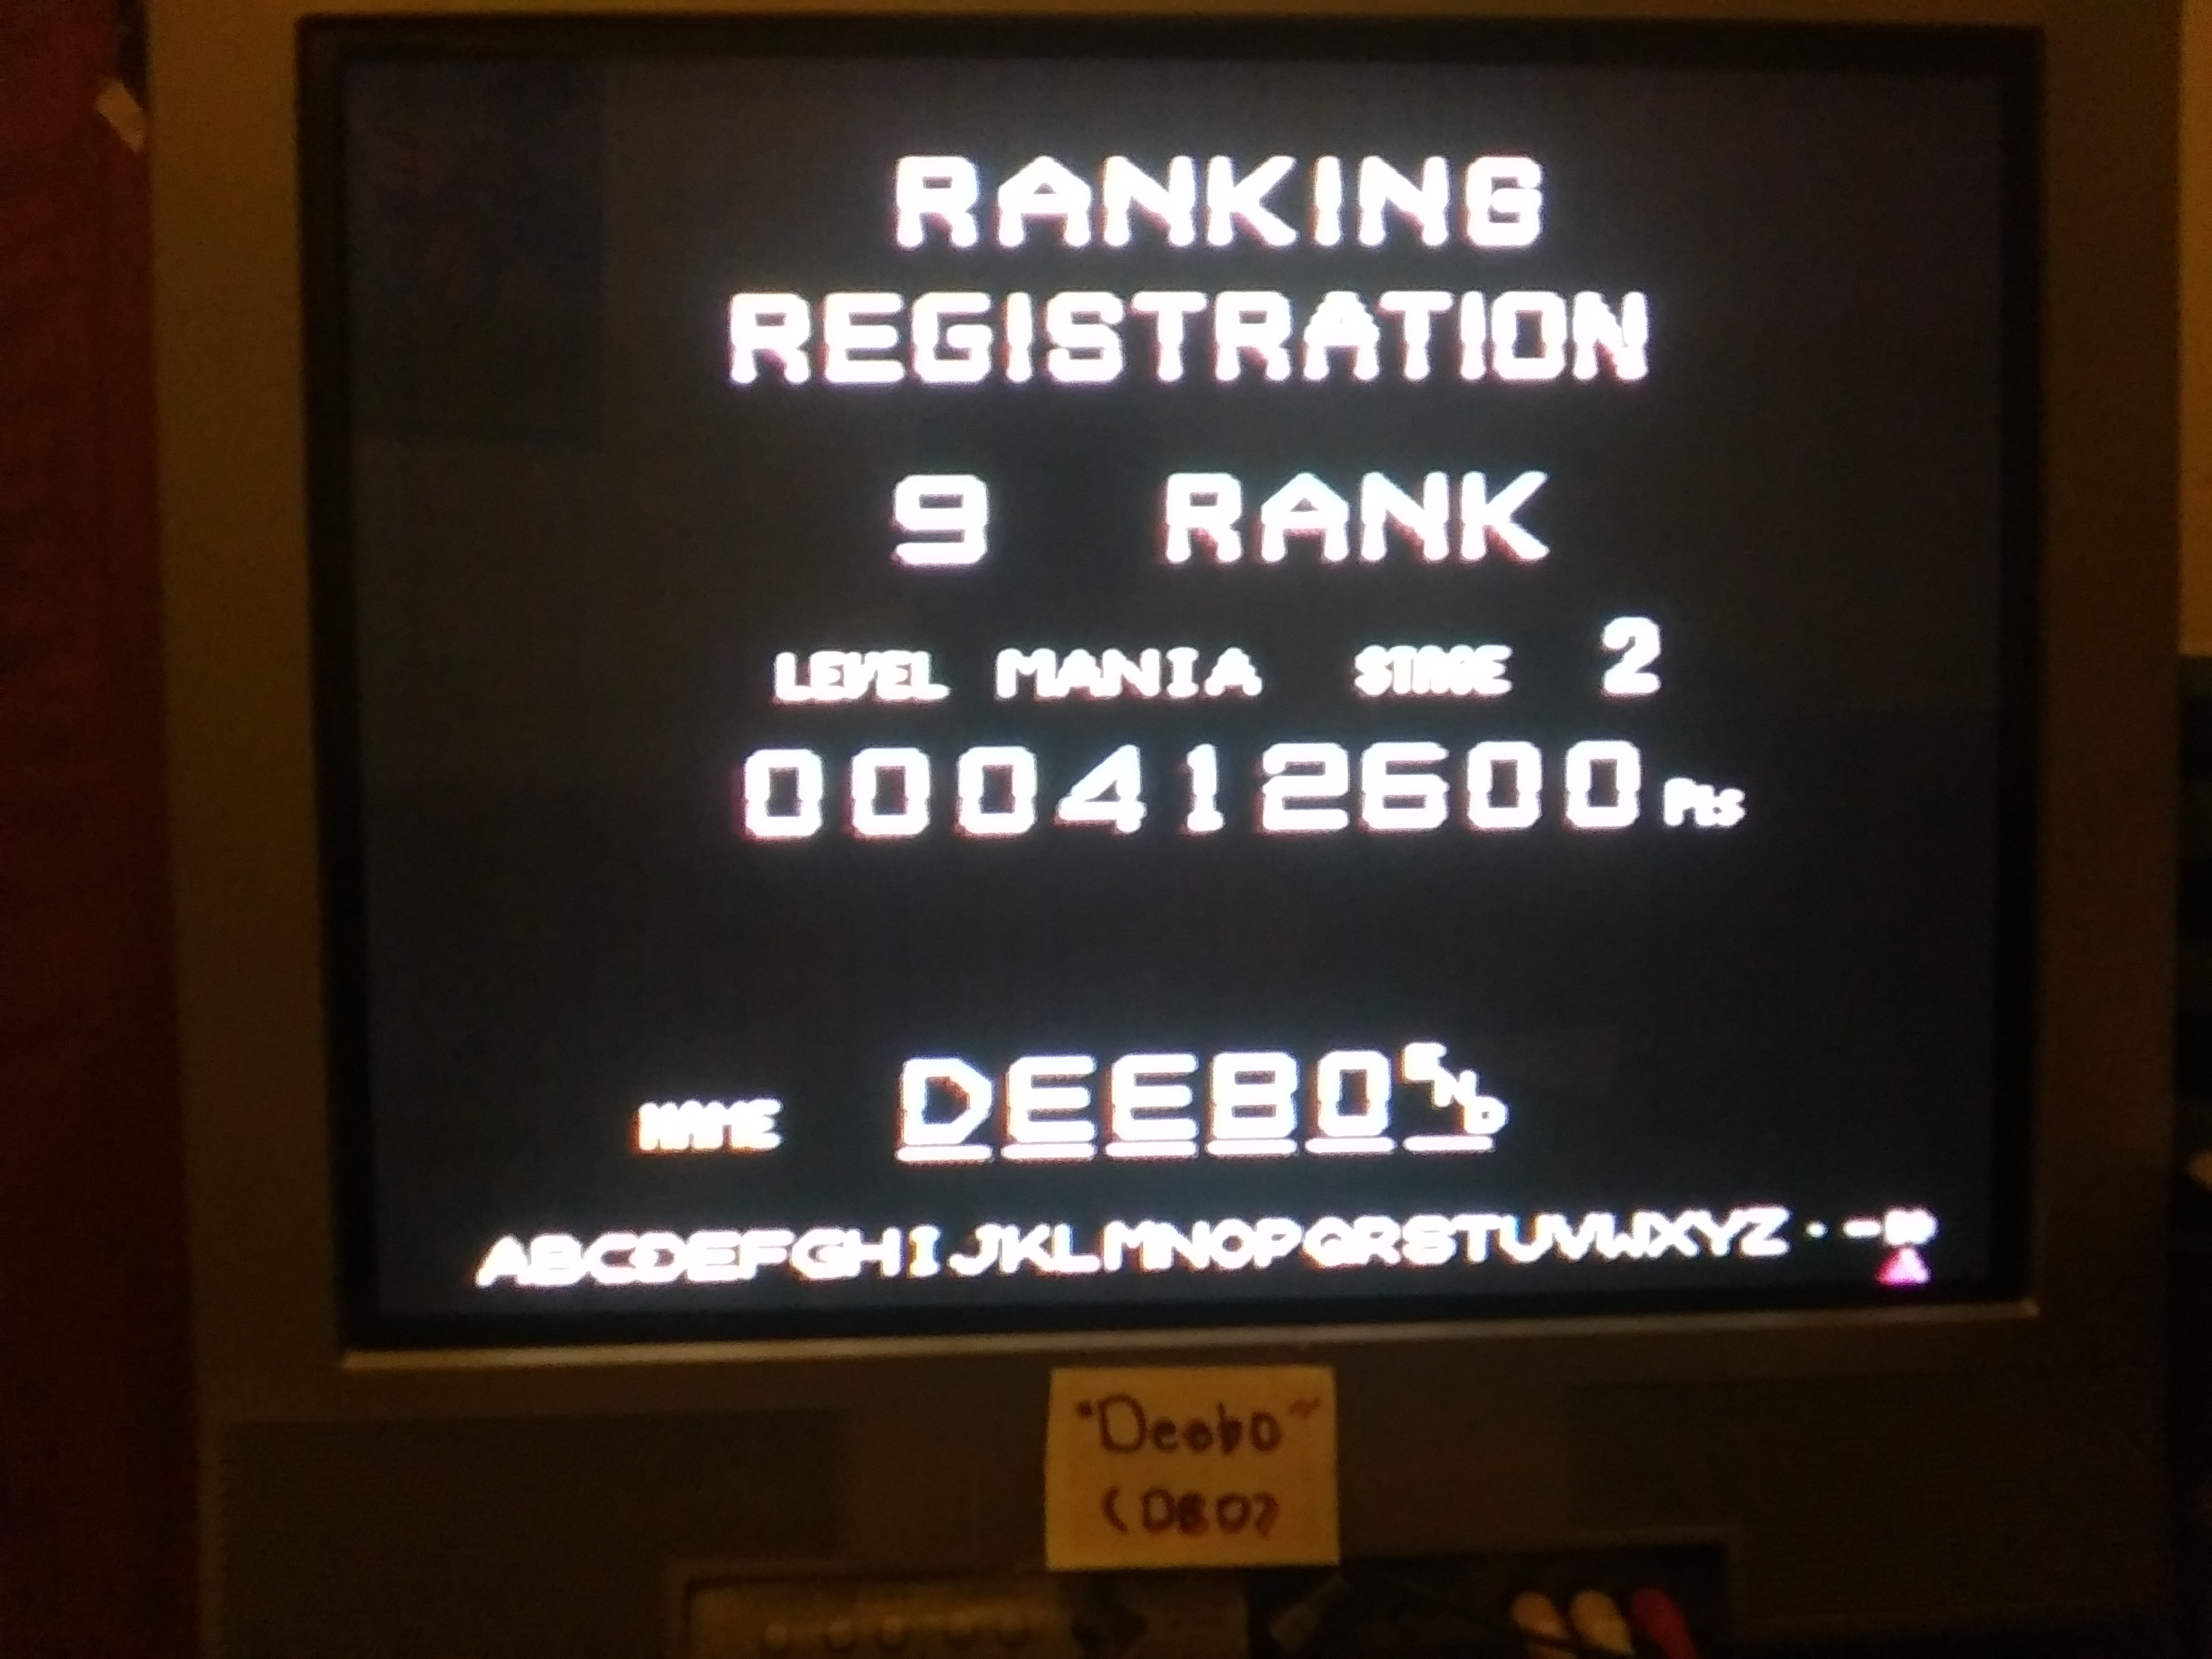 Deebo: Android Assault: Mania (Sega Genesis / MegaDrive) 412,600 points on 2019-03-20 20:53:59